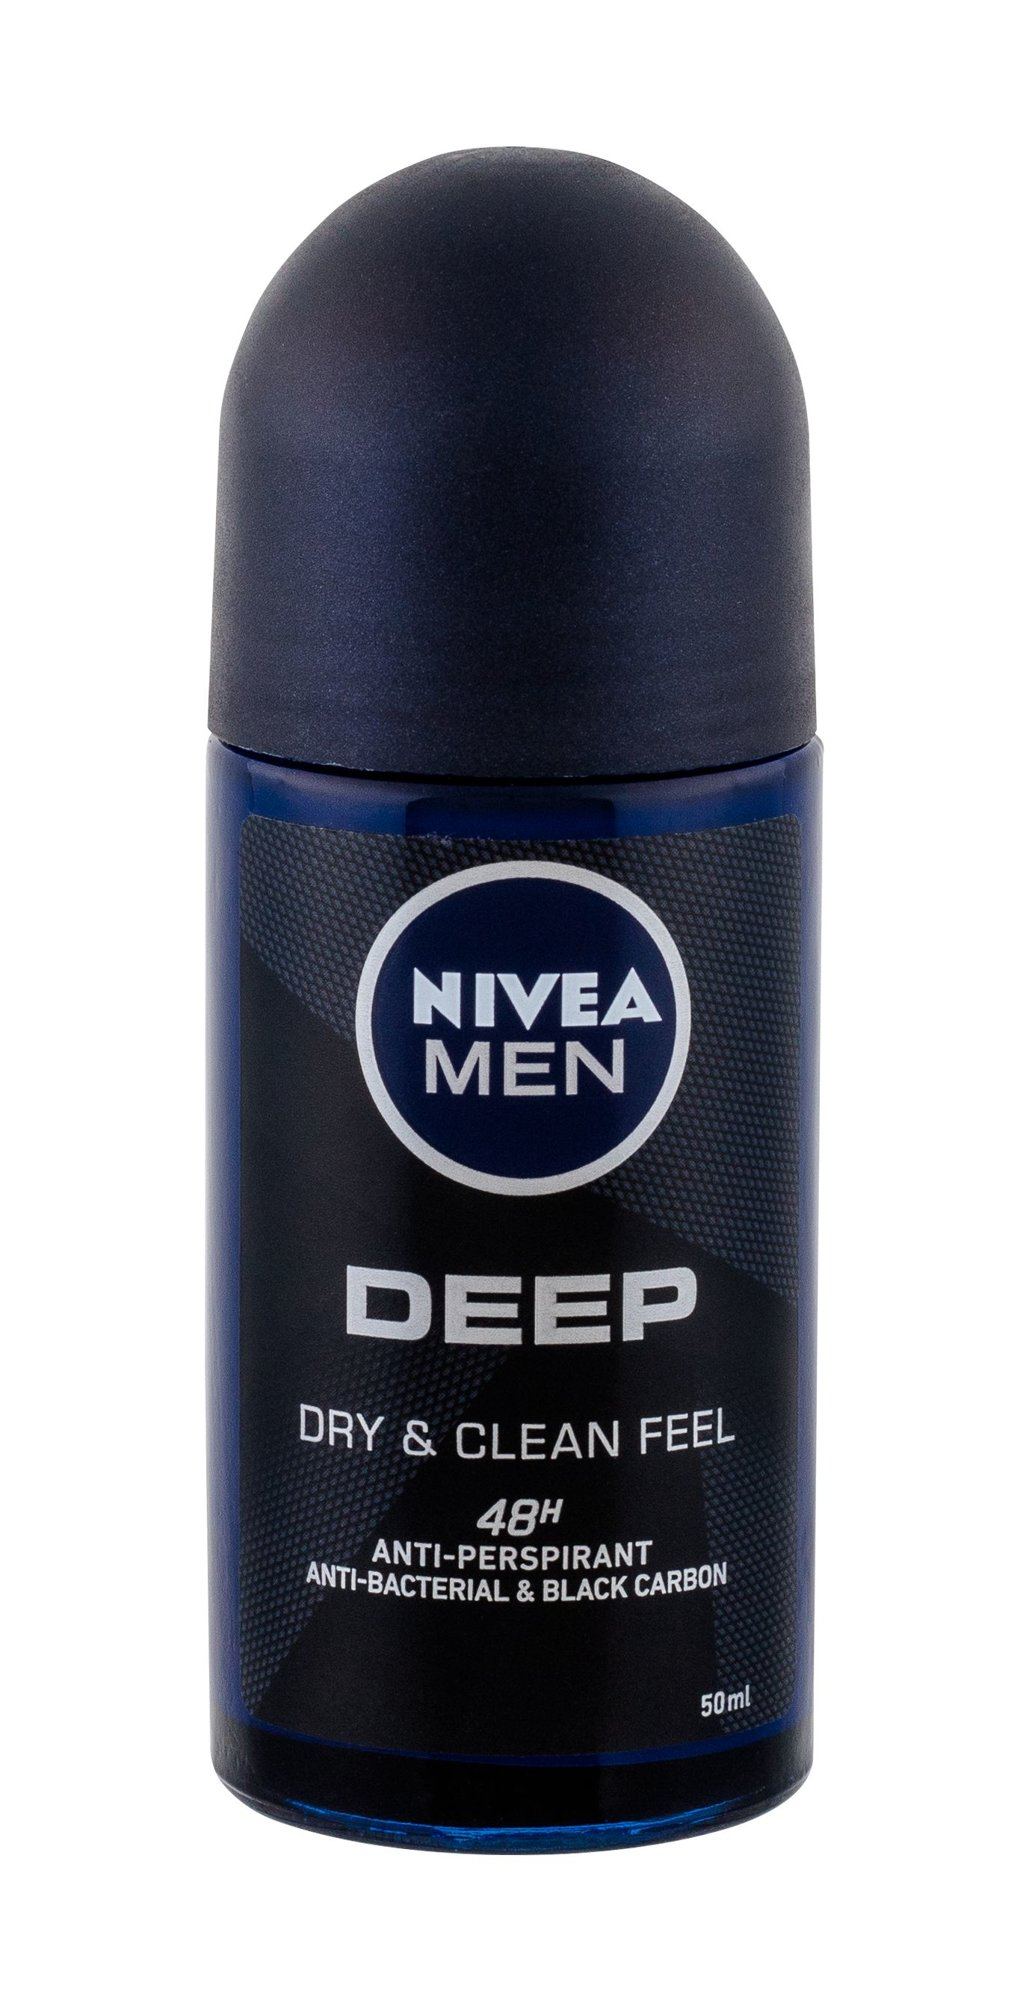 Nivea Men Deep Antiperspirant 50ml